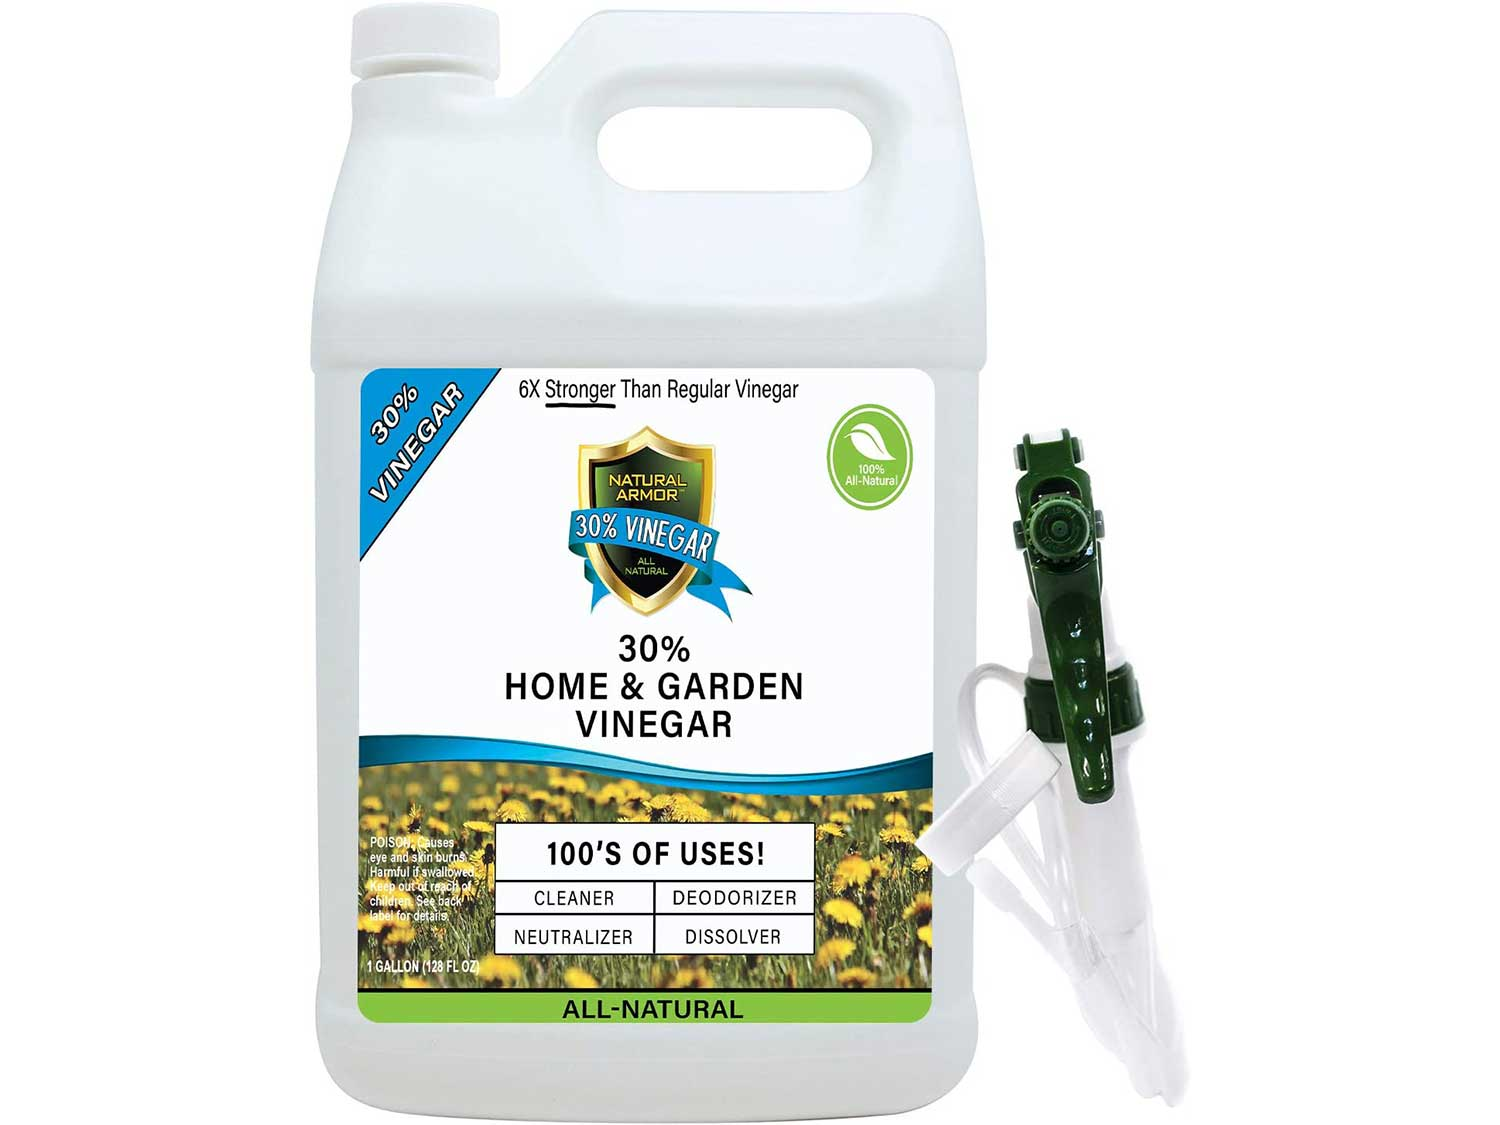 30% Vinegar Pure Natural & Safe Industrial Strength Concentrate for Home & Garden & Literally Hundreds of Other Uses 6X Stronger Than Regular Vinegar (128 Oz Gallon)